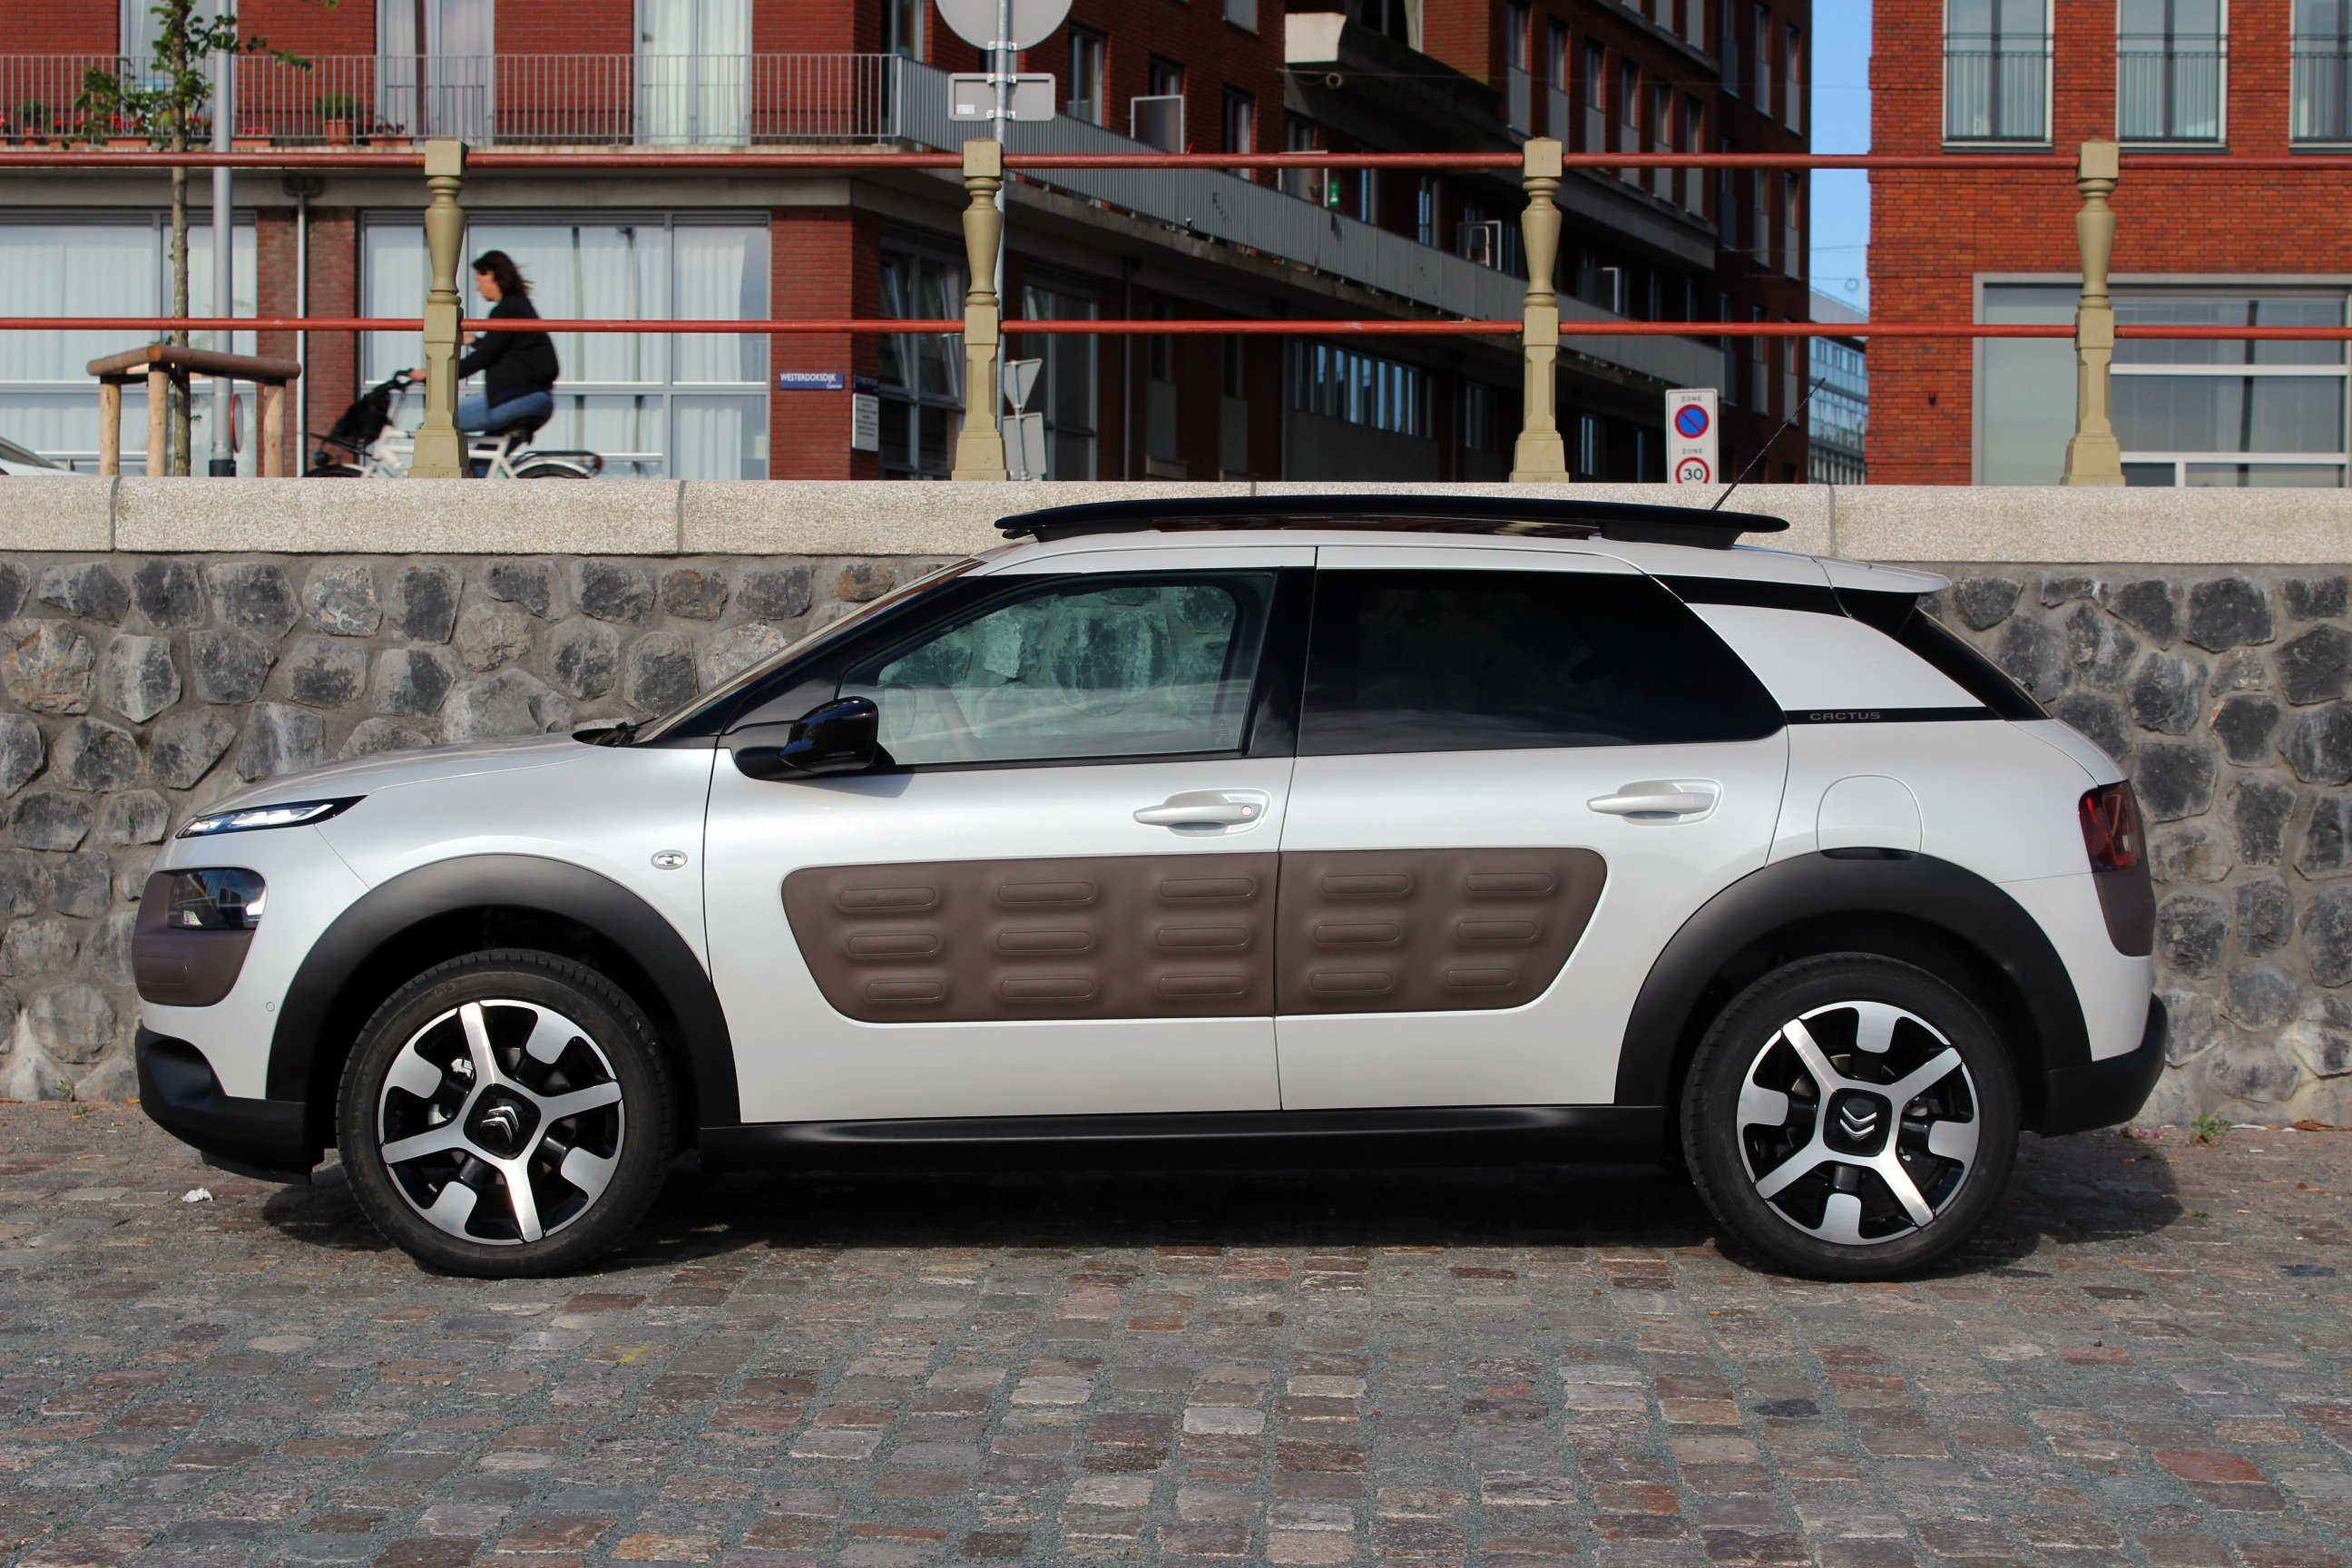 2014 citroen c4 cactus wallpaper 2592x1728 368972 wallpaperup. Black Bedroom Furniture Sets. Home Design Ideas